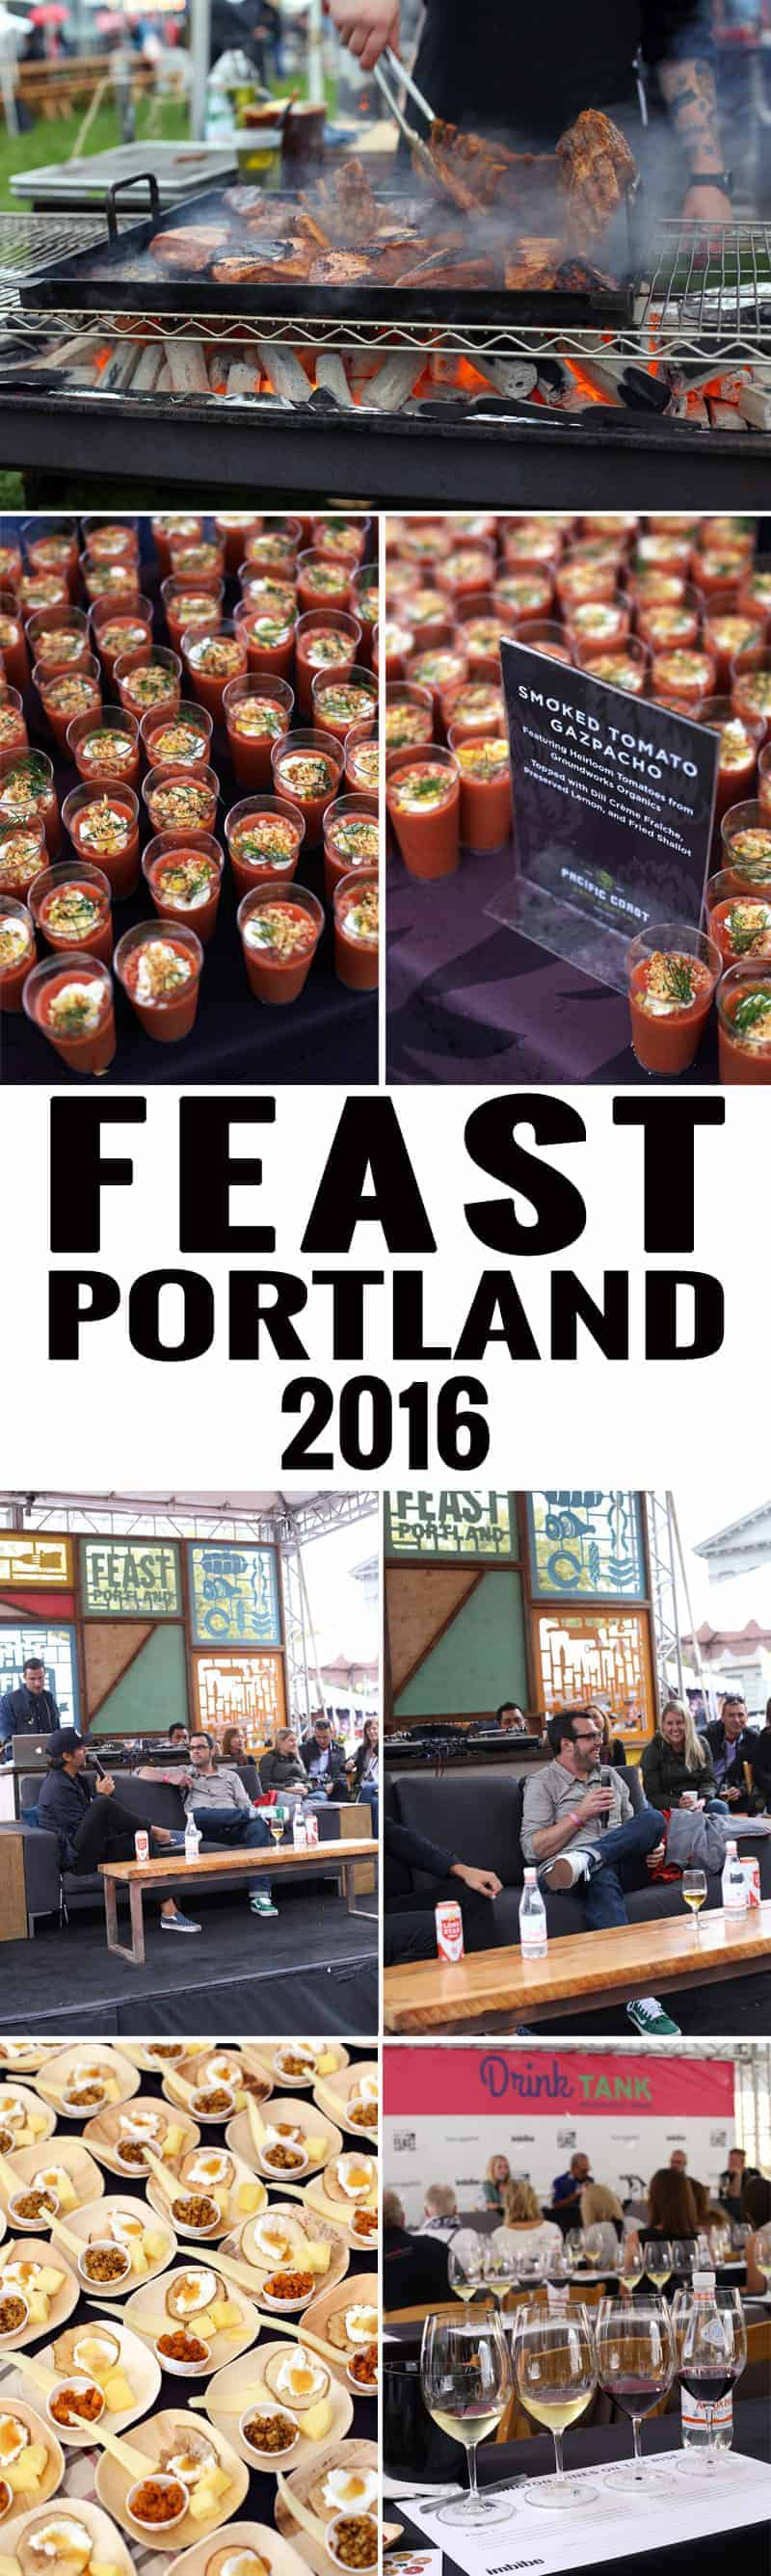 Feast Portland 2016 in Pictures